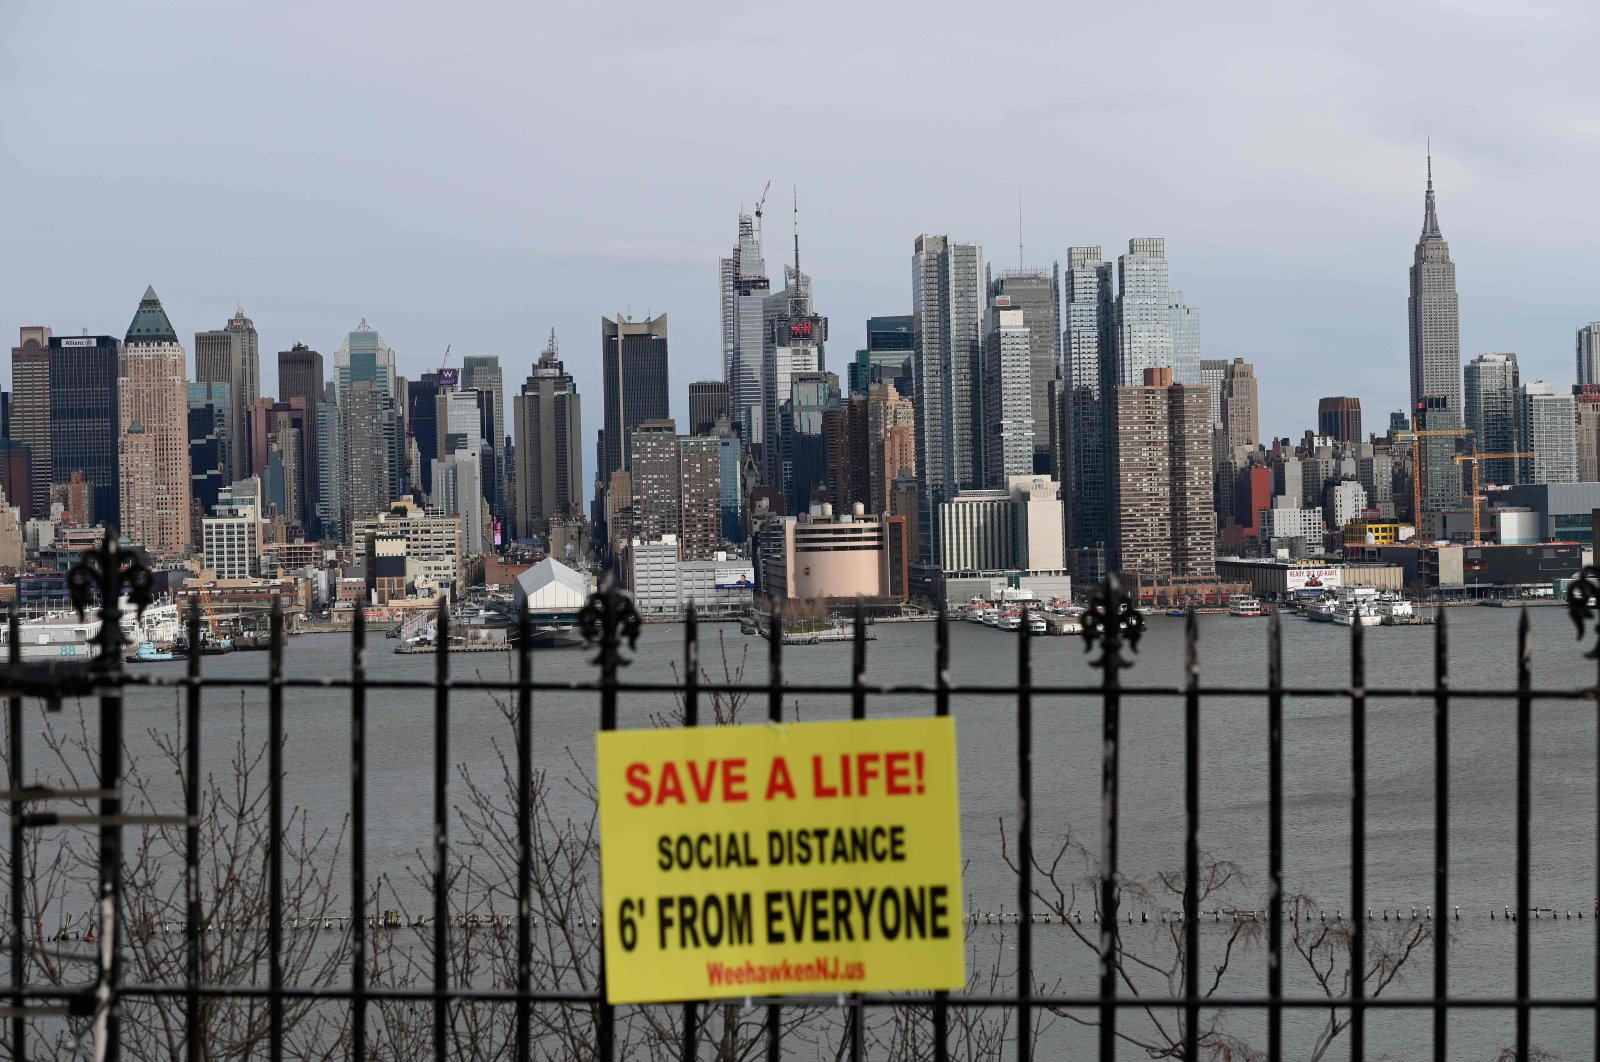 A sign hangs in a park overlooking the Manhattan skyline, as seen from Weehawken, New Jersey, Thursday, April 2, 2020. (AFP Photo)